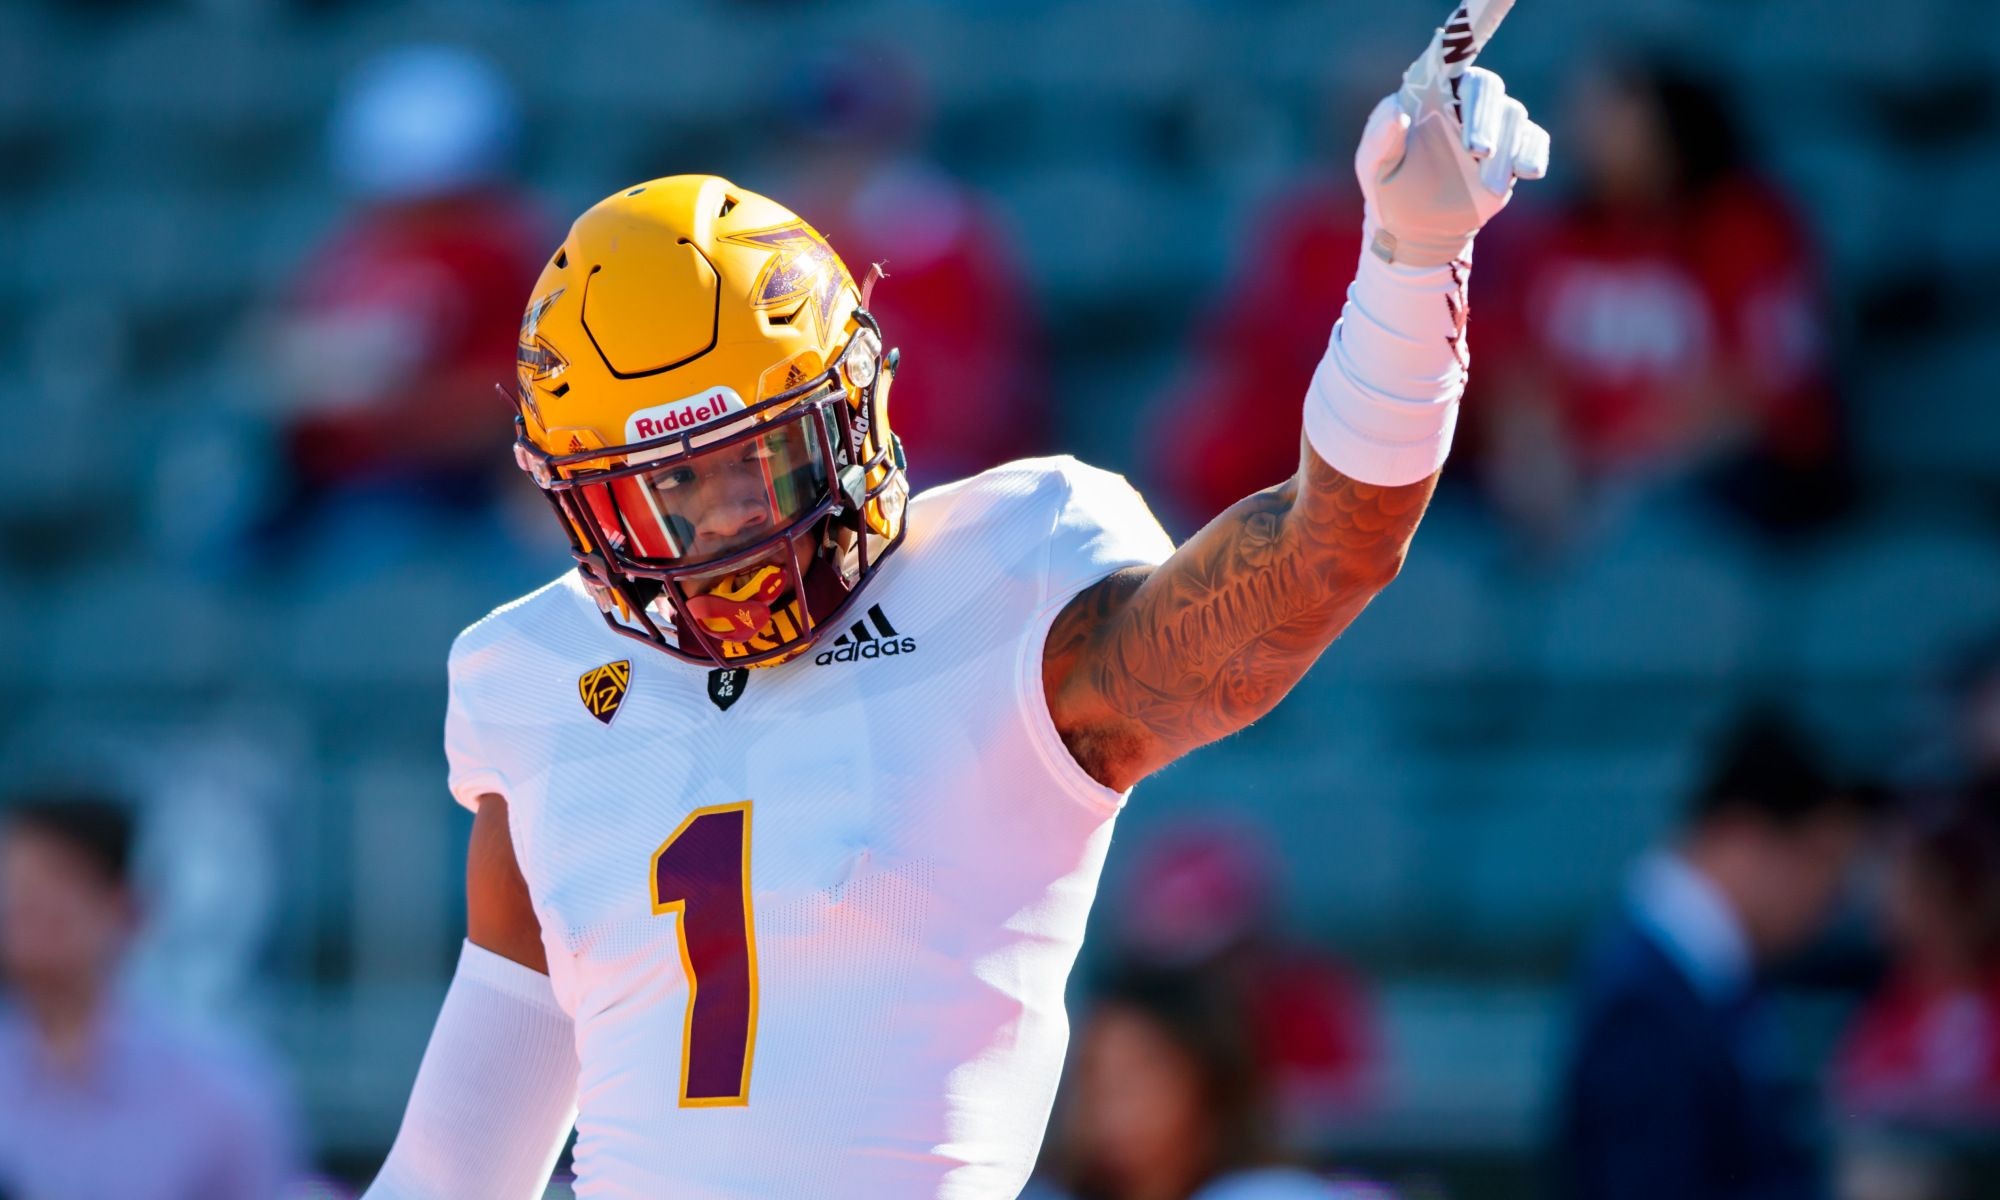 Fantasy football N'Keal Harry rated as No. 1 rookie by